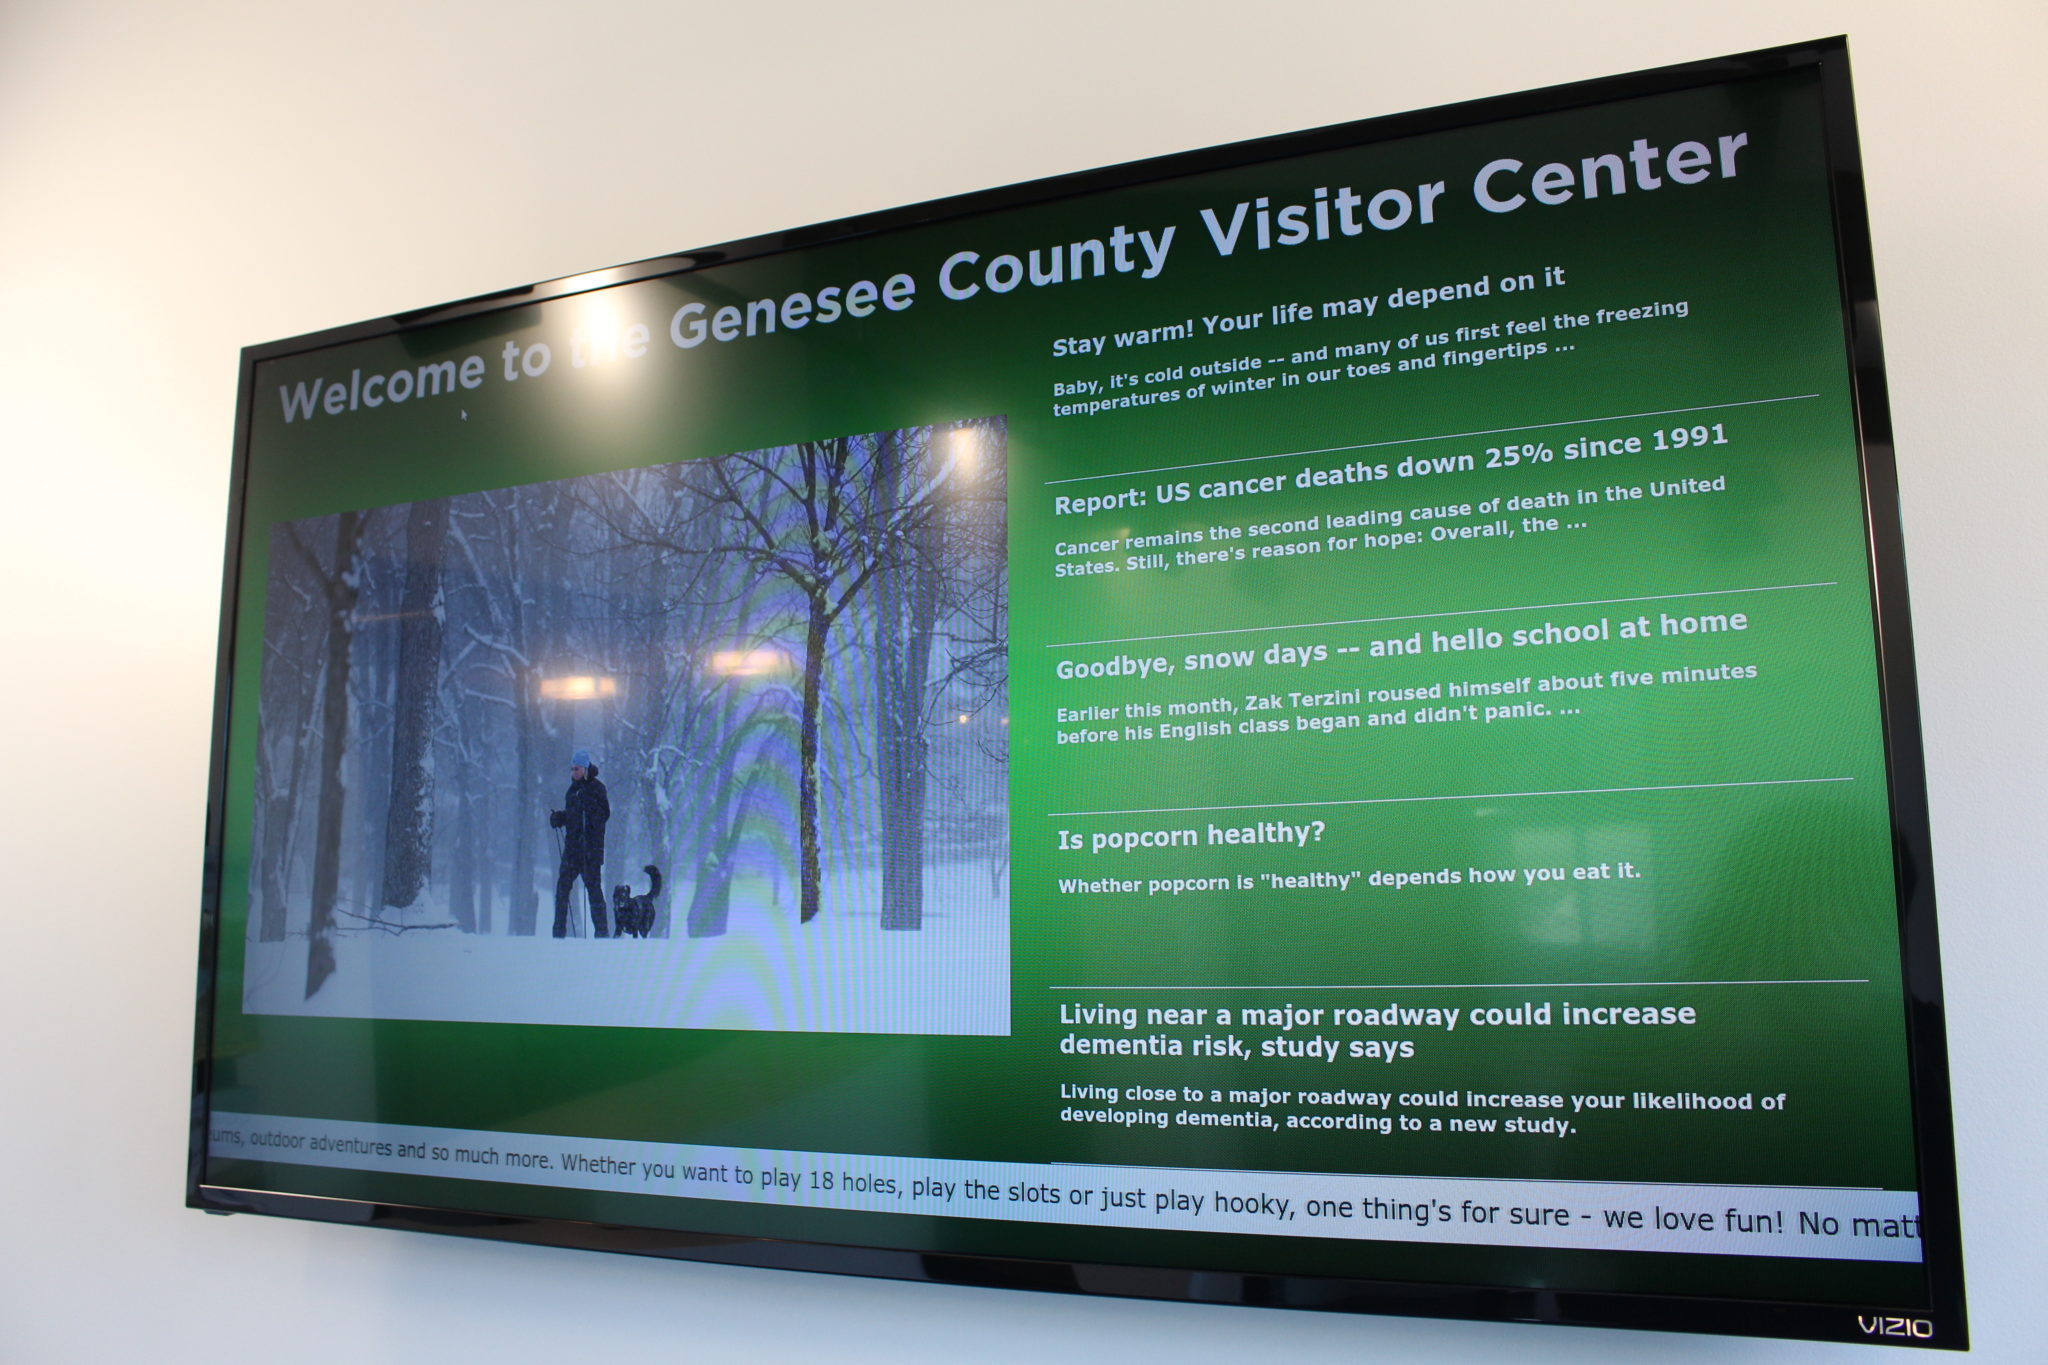 genesee county visitors center, genesee county digital display, visitor center digital signage, recreational digital signage